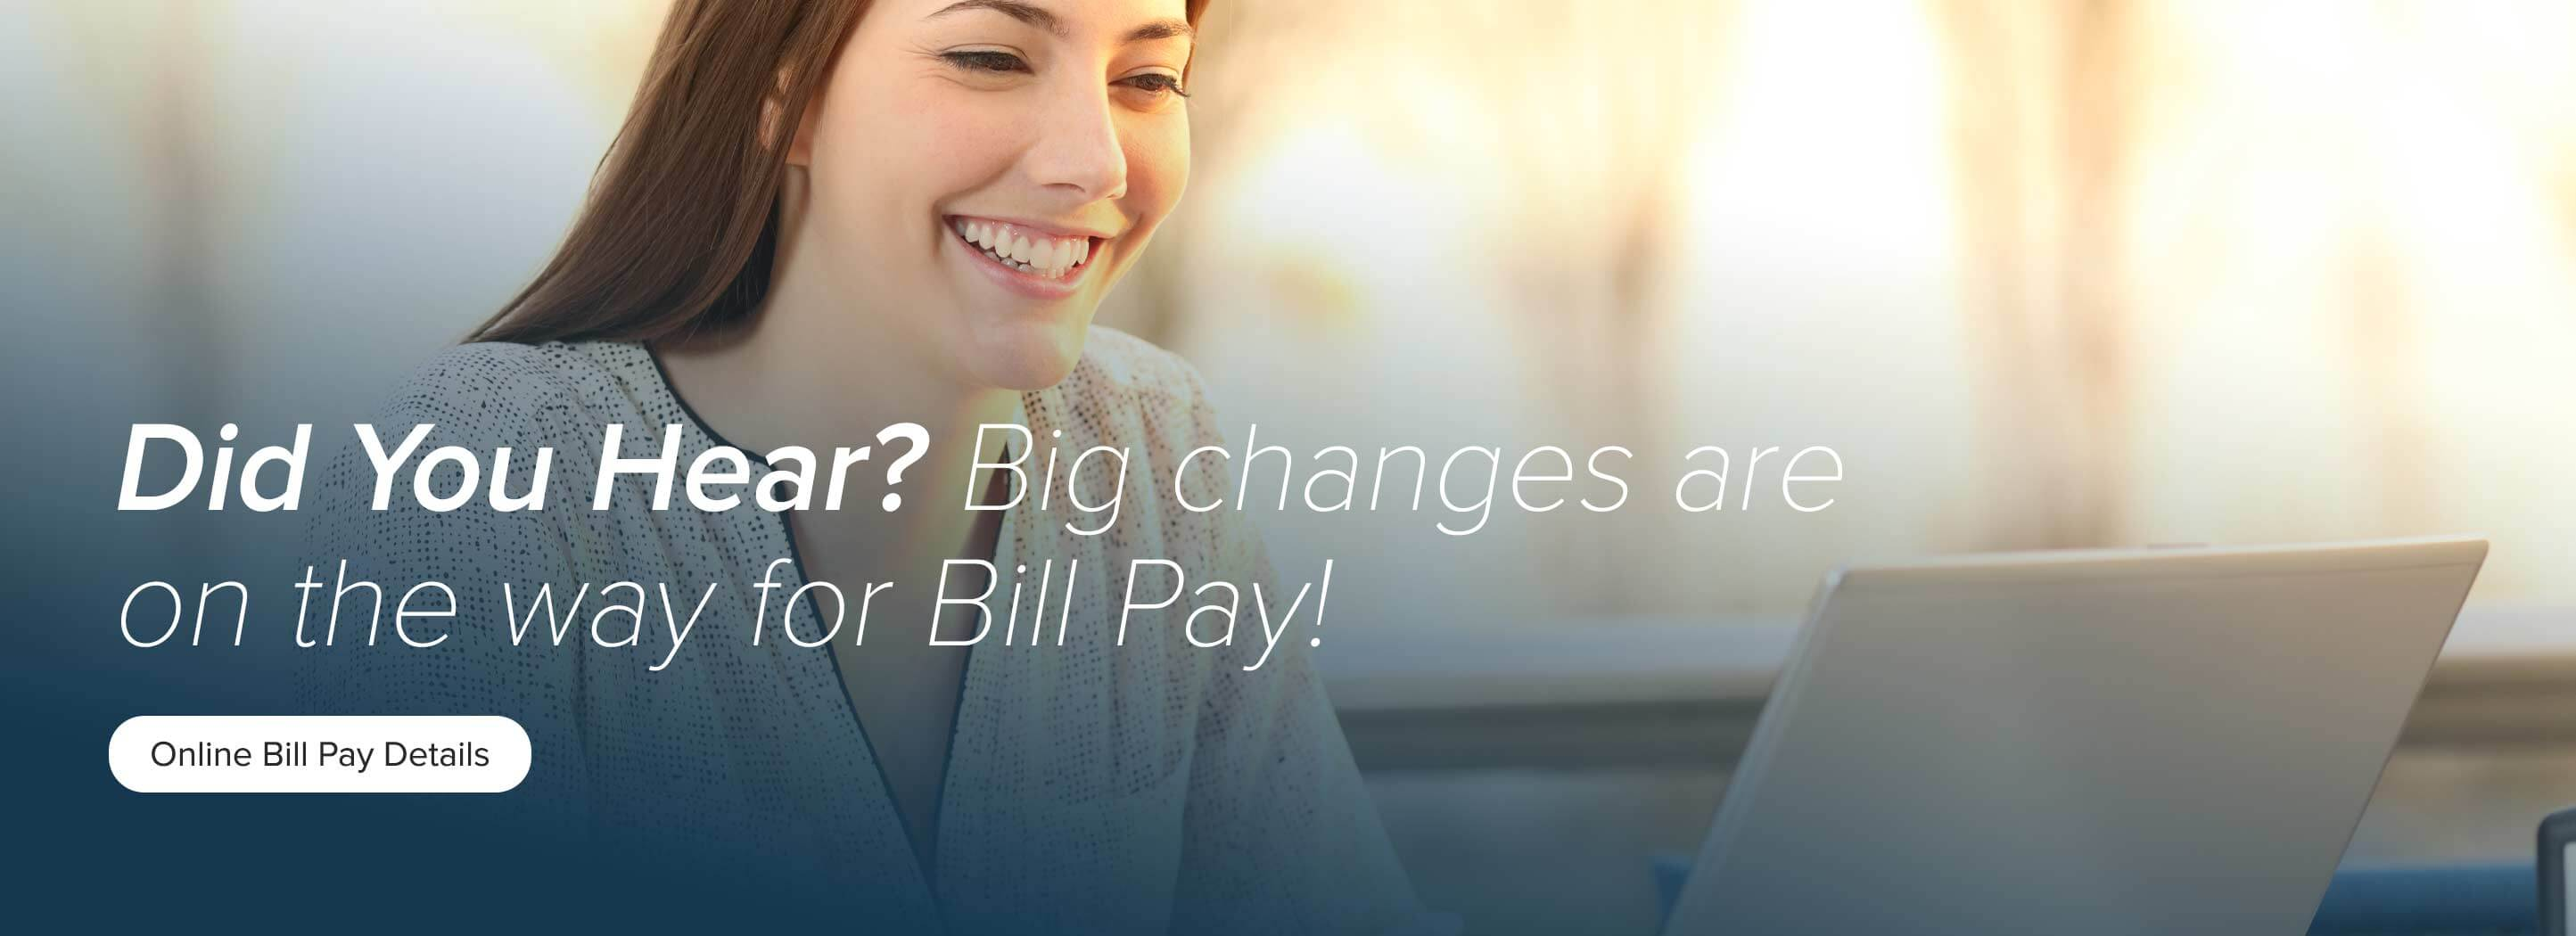 Did you hear? Big changes are on the way for Bill Pay?